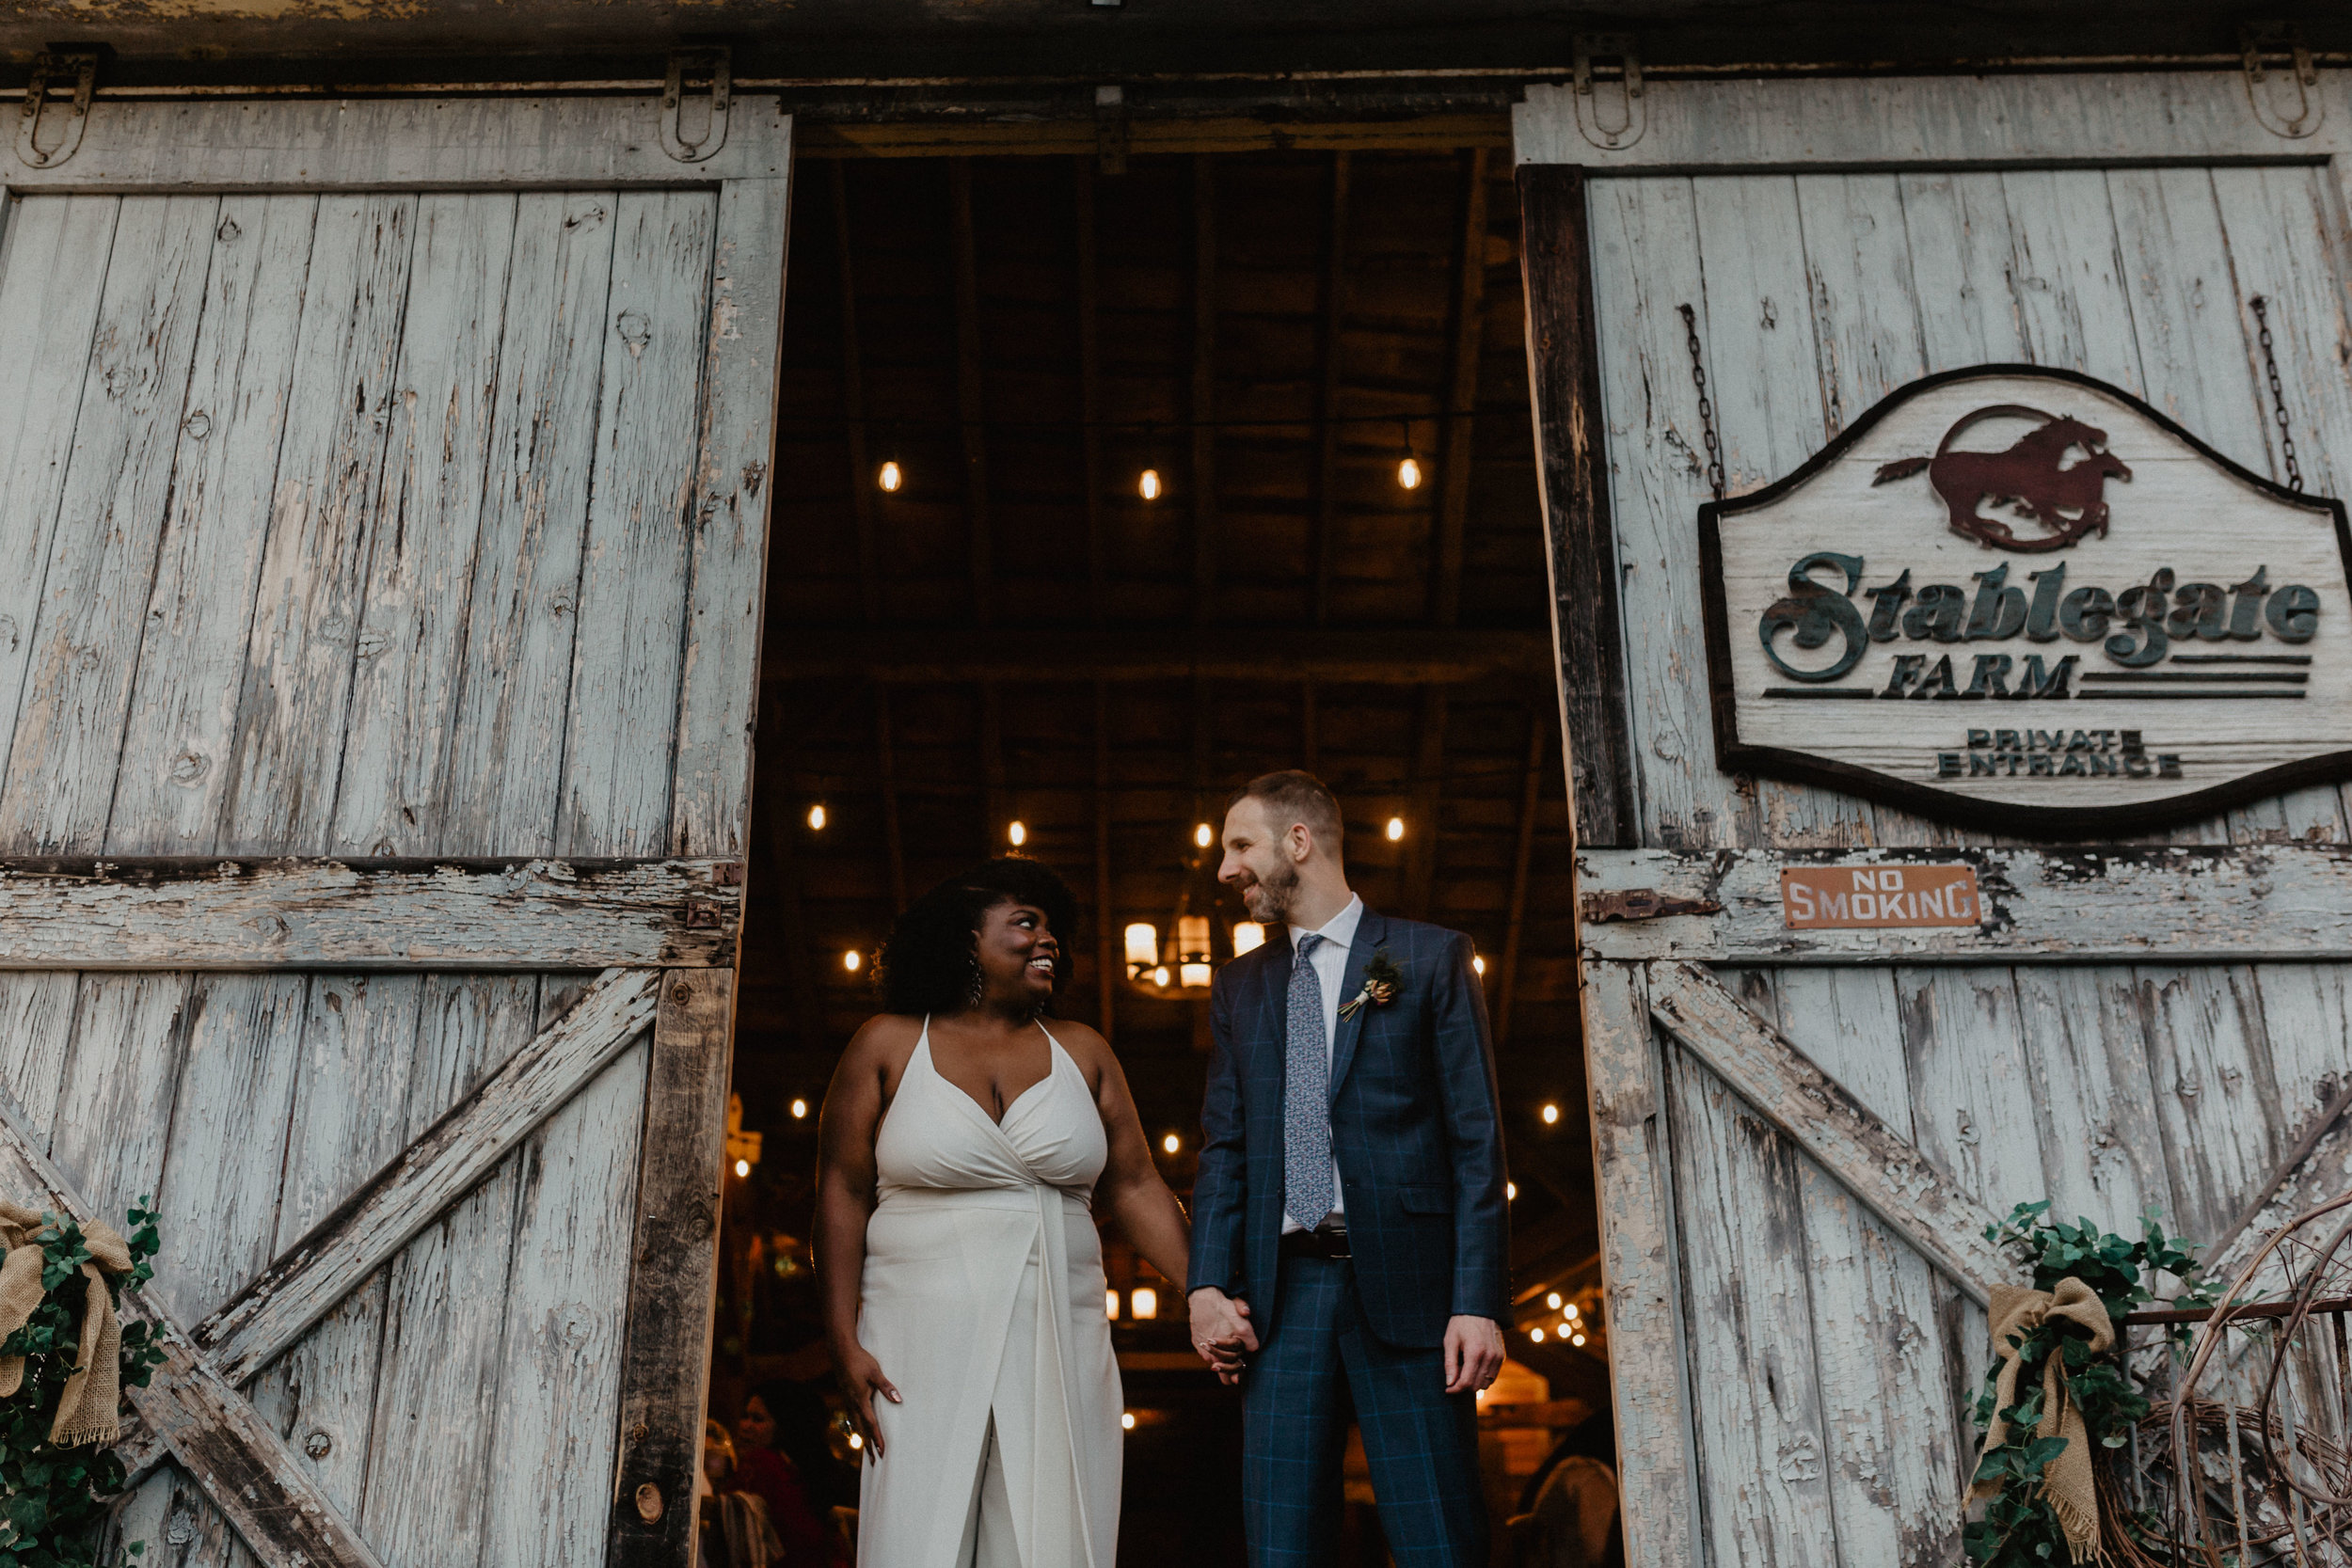 stablegate_farm_and_vineyard_wedding_082.jpg